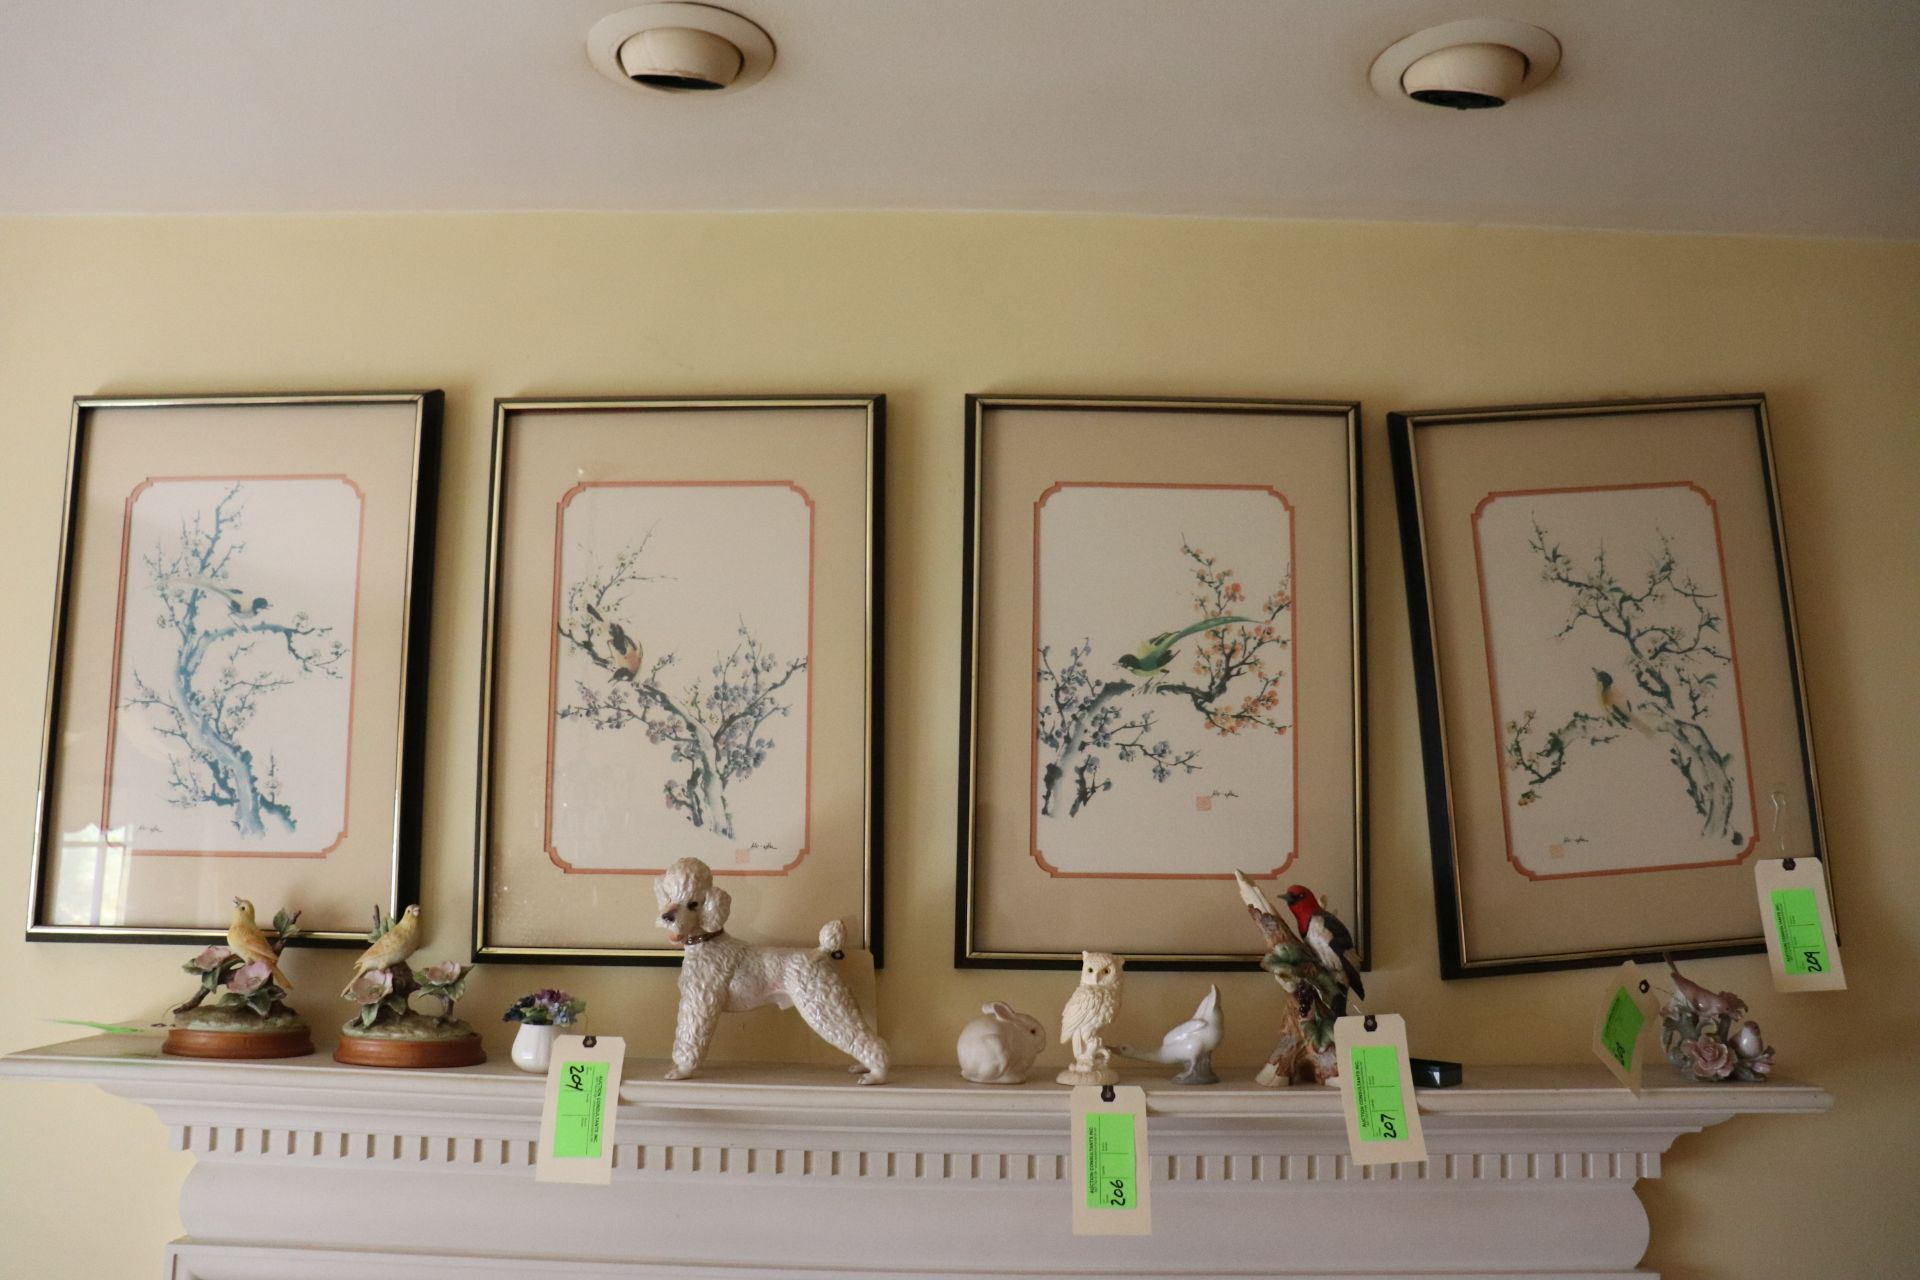 Set of four Asian color screenprints on paper depicting birds and foliage, all matted and framed, ap - Image 2 of 5